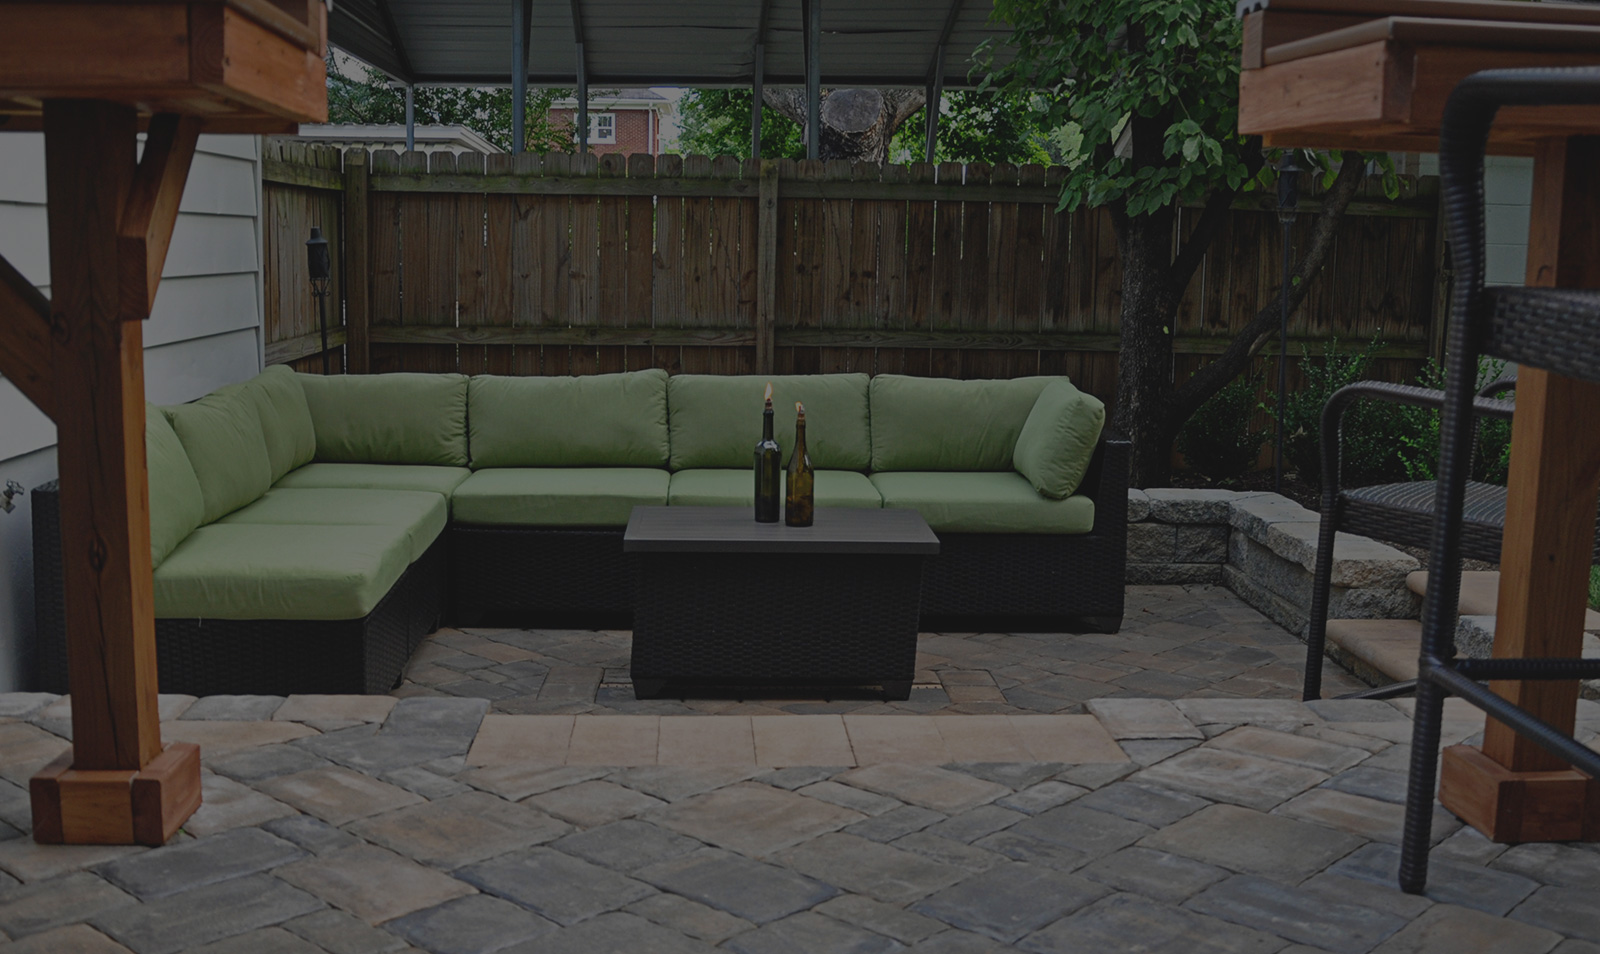 A Great Scape Hardscape And Landscape Contractors To